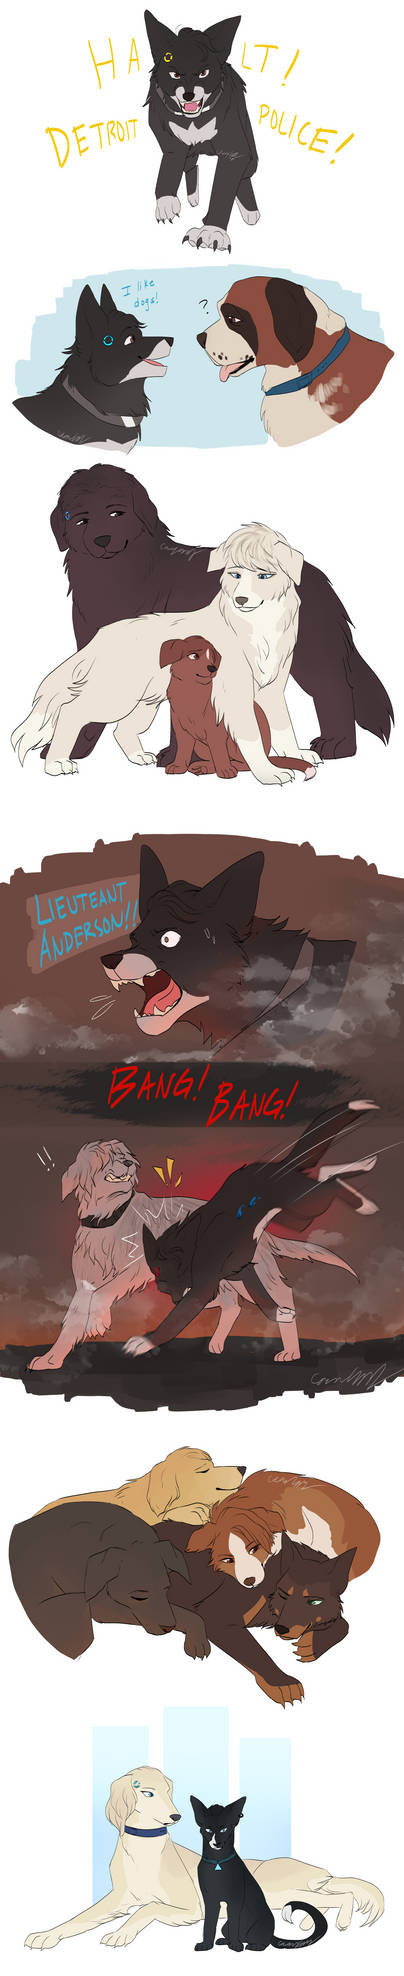 Detroit: Become Dogs Sketchdump